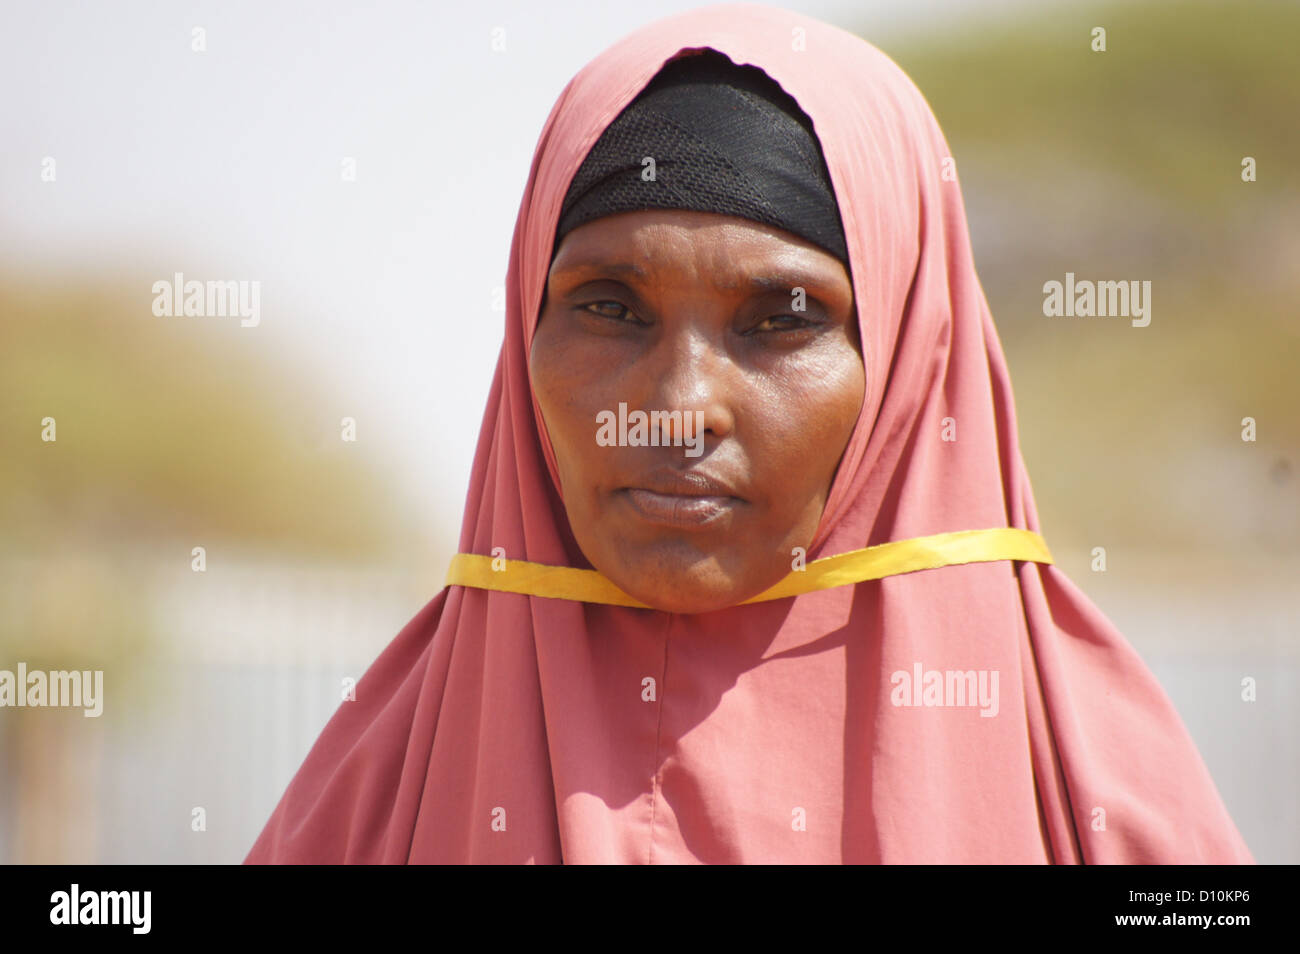 30-year old Diarra Abdullahi from Somalia pictured in the refugee camp of Buramino, which is part of the wider refugee - Stock Image